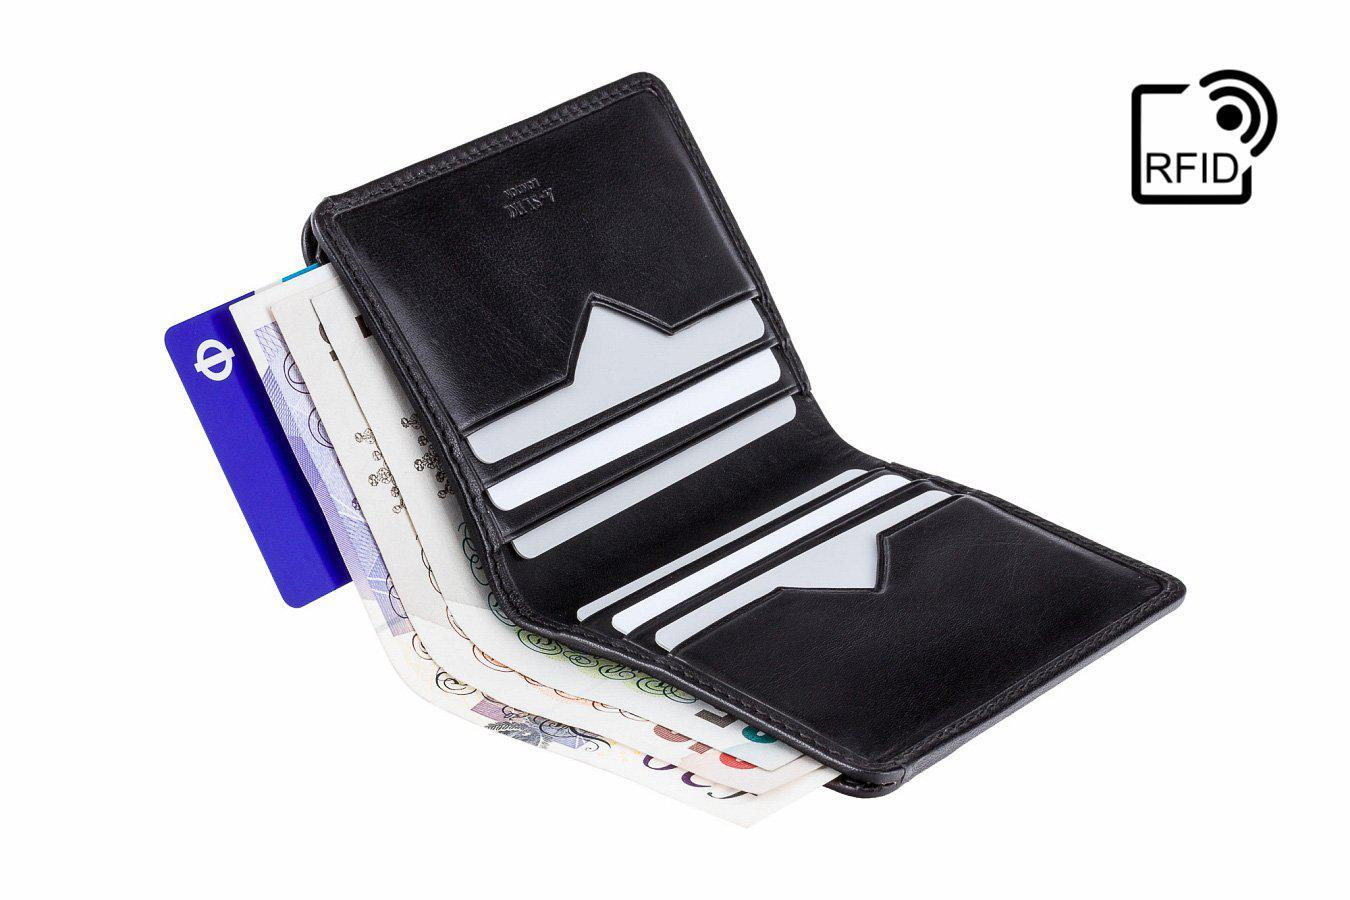 Wallet - Chikara Tap 'n' Go RFID Leather Wallet